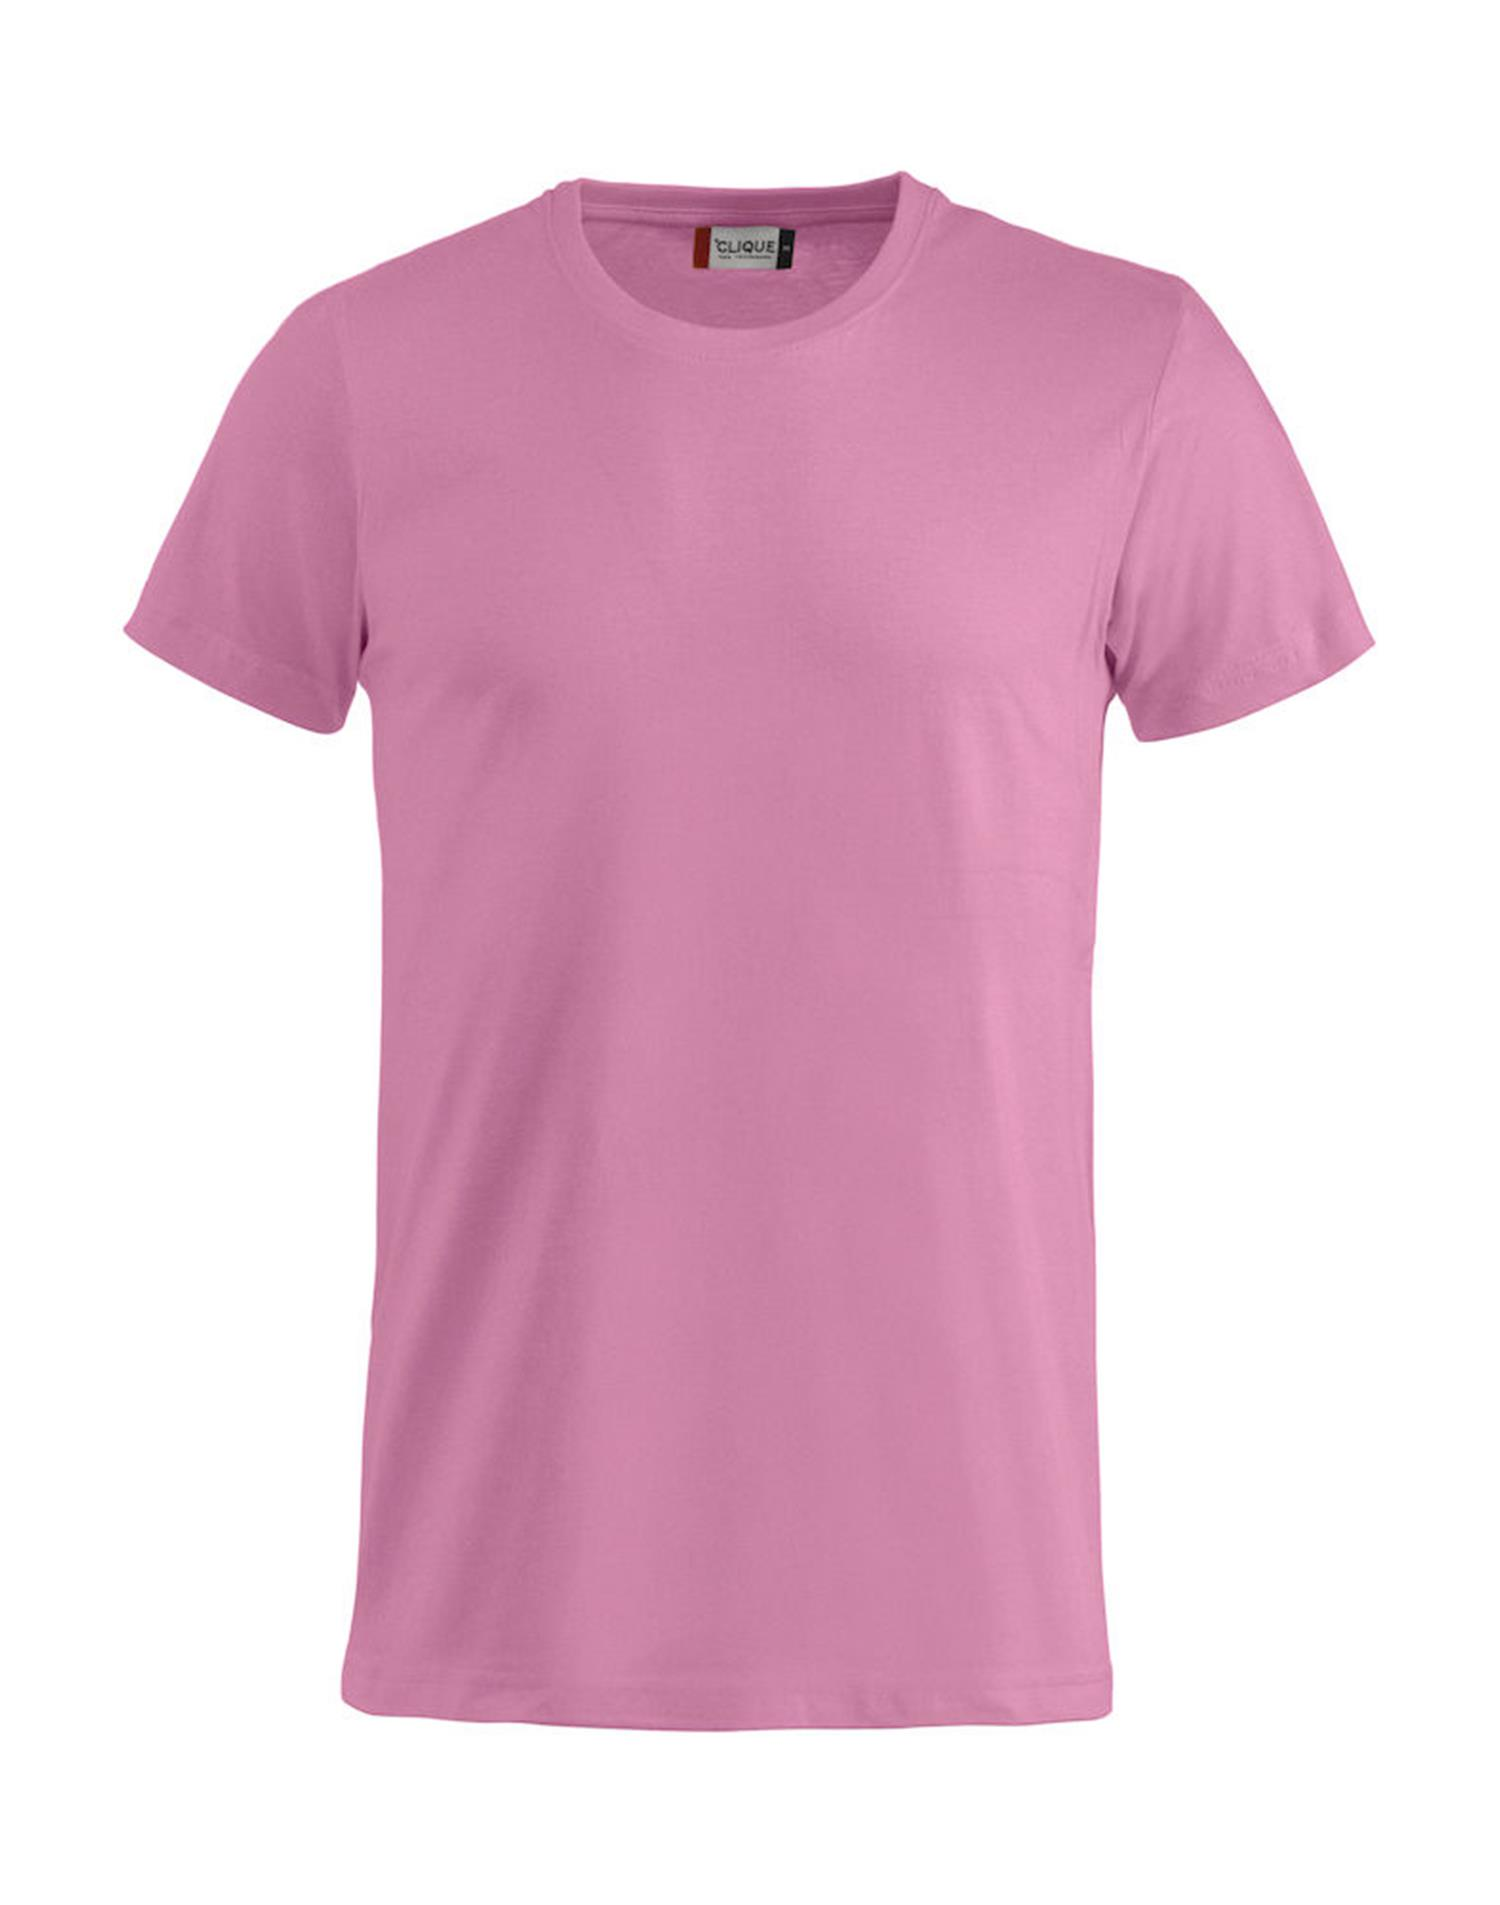 NewWave T-shirt Basic-T Clique (2XL - ROSA ACCESO)